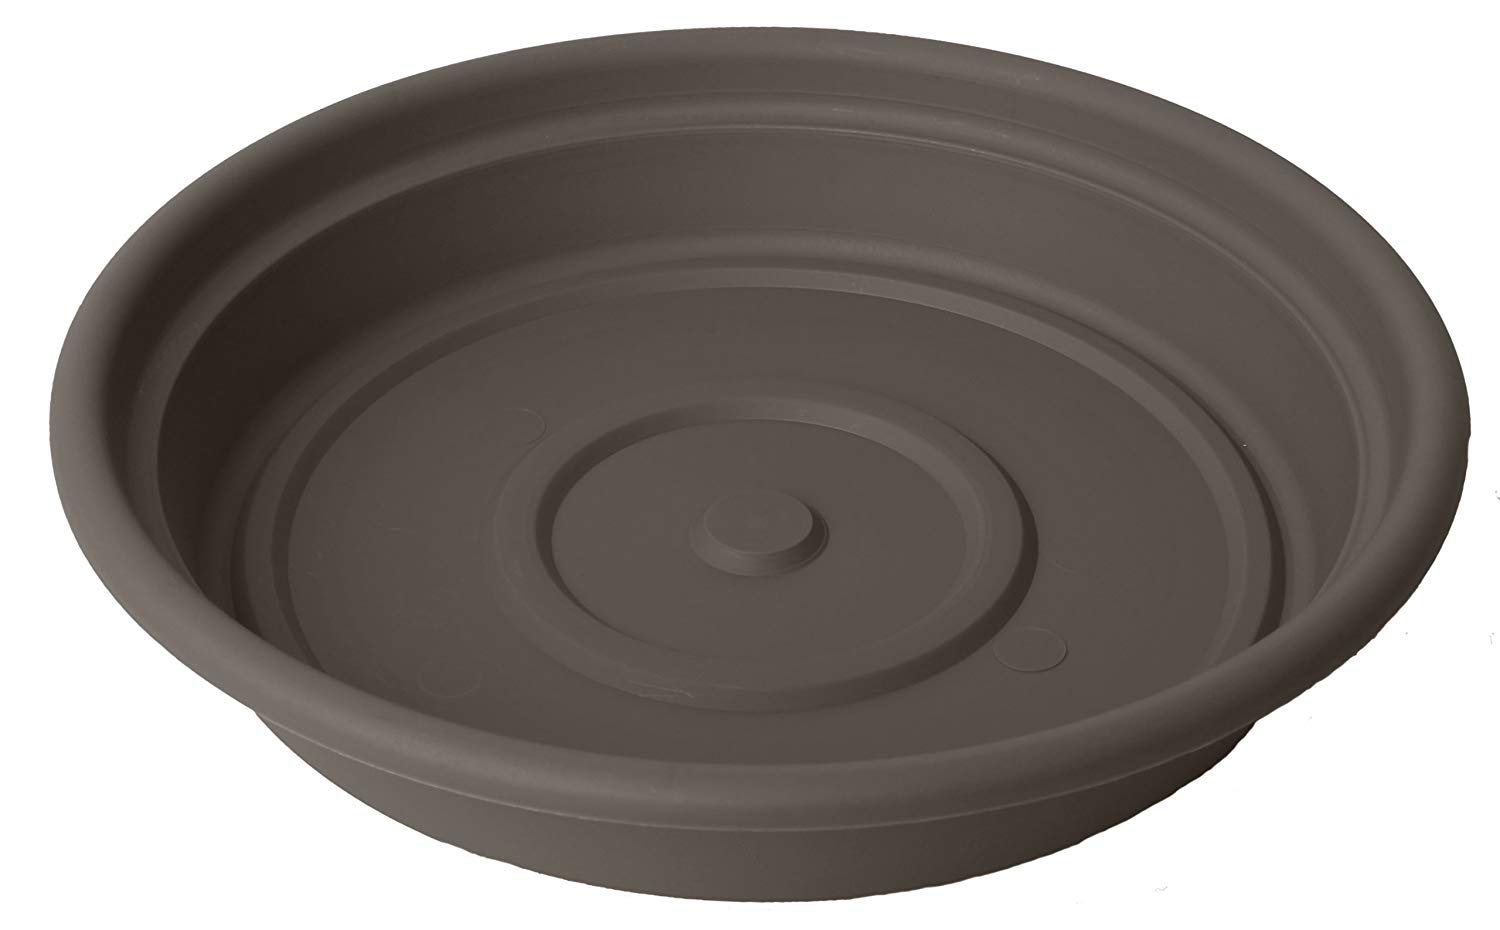 "Dura Cotta Round Saucer Planter (Set of 6) Size: 2.88"" H x 15.63"" W x 15.63"" D, Color: Peppercorn"